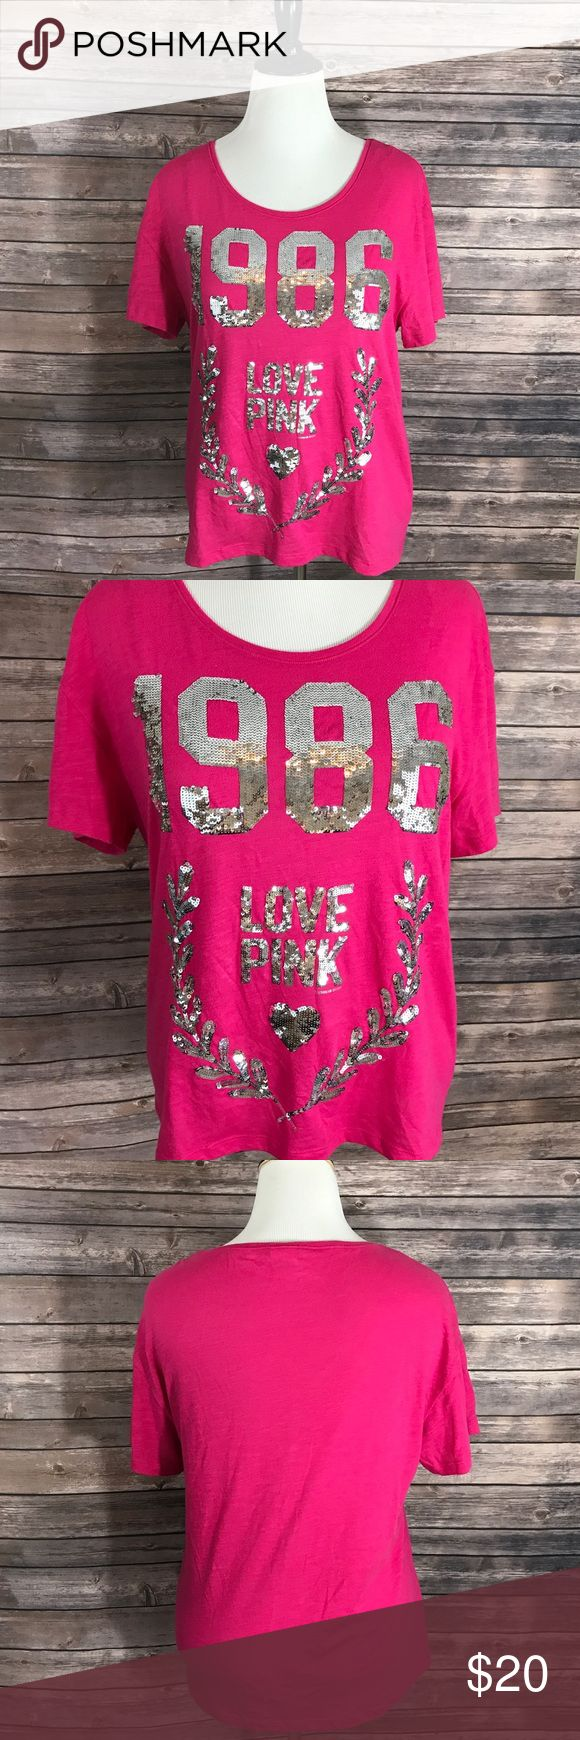 VS PINK Womens Top Sz Large Pink Silver Sequin Victorias Secret Love PINK Womens Top Sz Large Pink Silver Sequin 1986 Tee Shirt. Measurements: (in inches) Underarm to underarm: 21 Length: 25  Good, gently used condition PINK Tops Tees - Short Sleeve